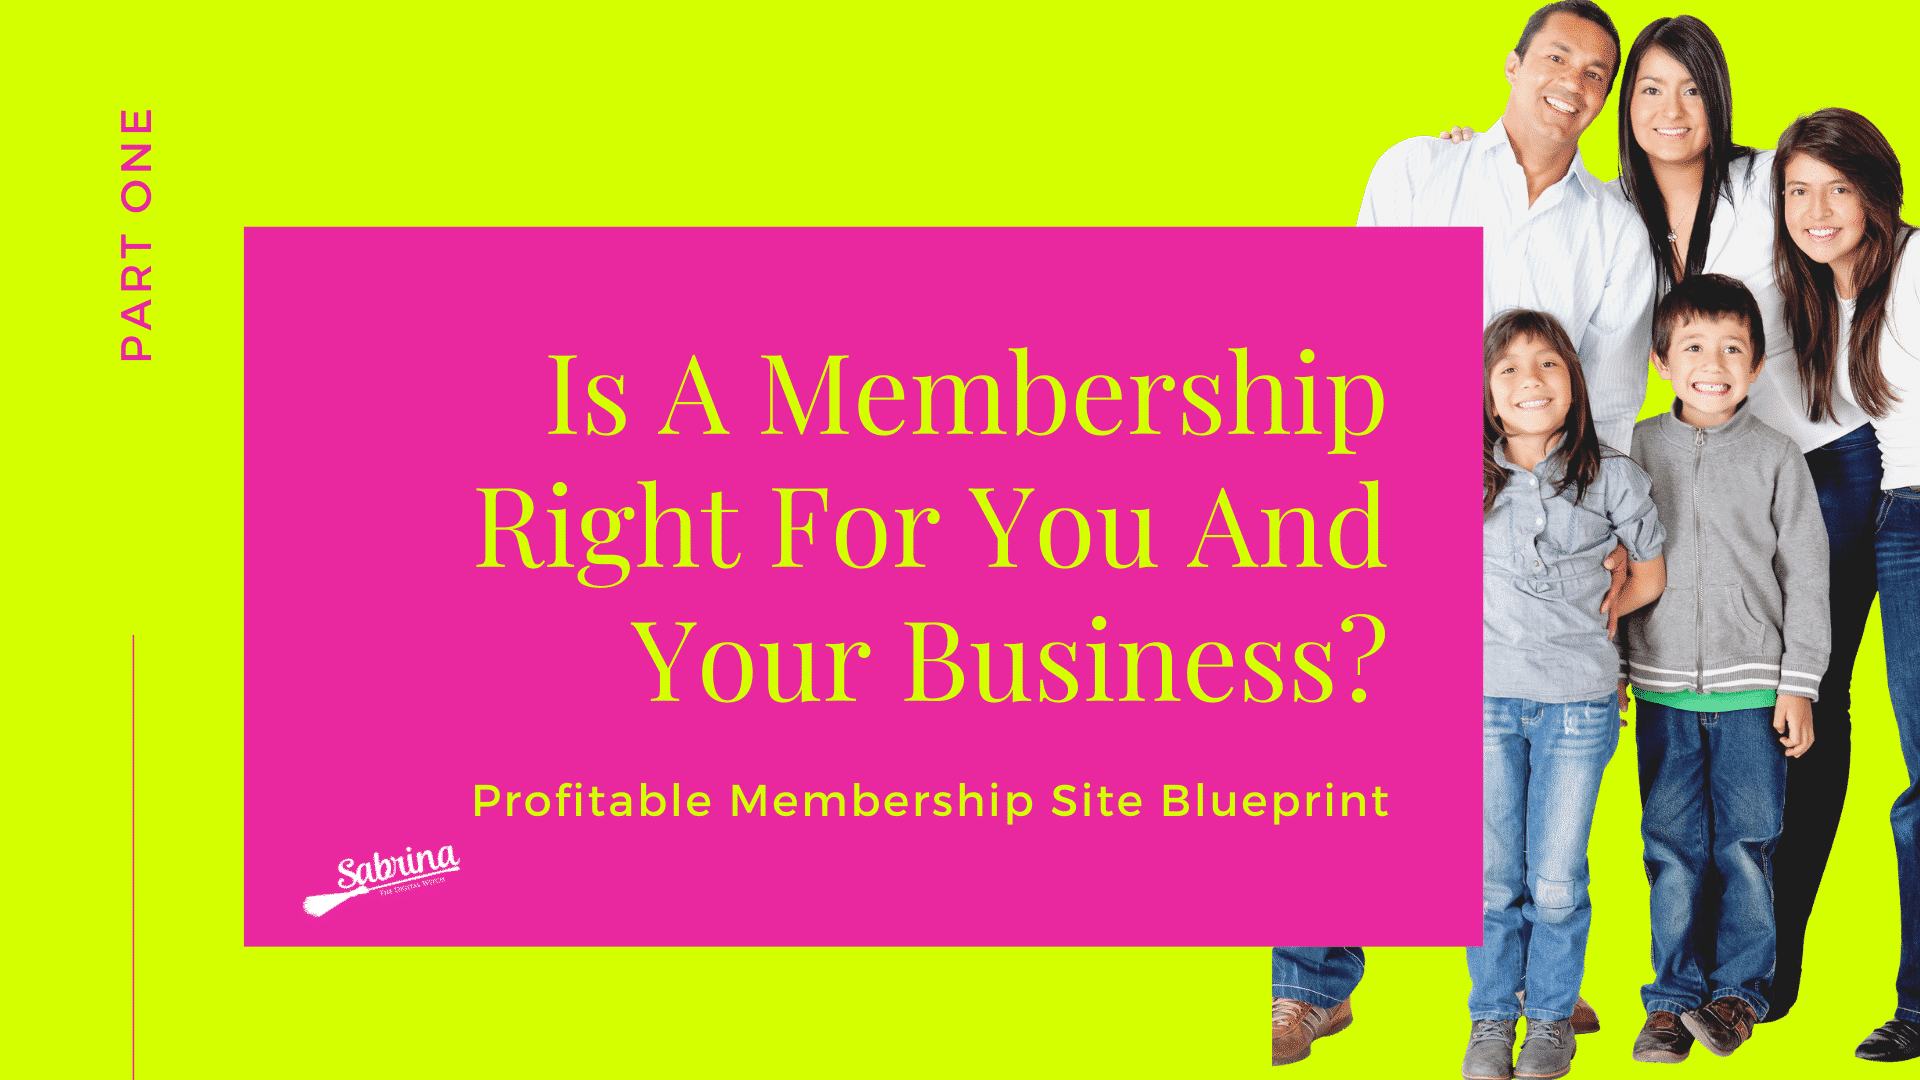 Is A Membership Right For You And Your Business?